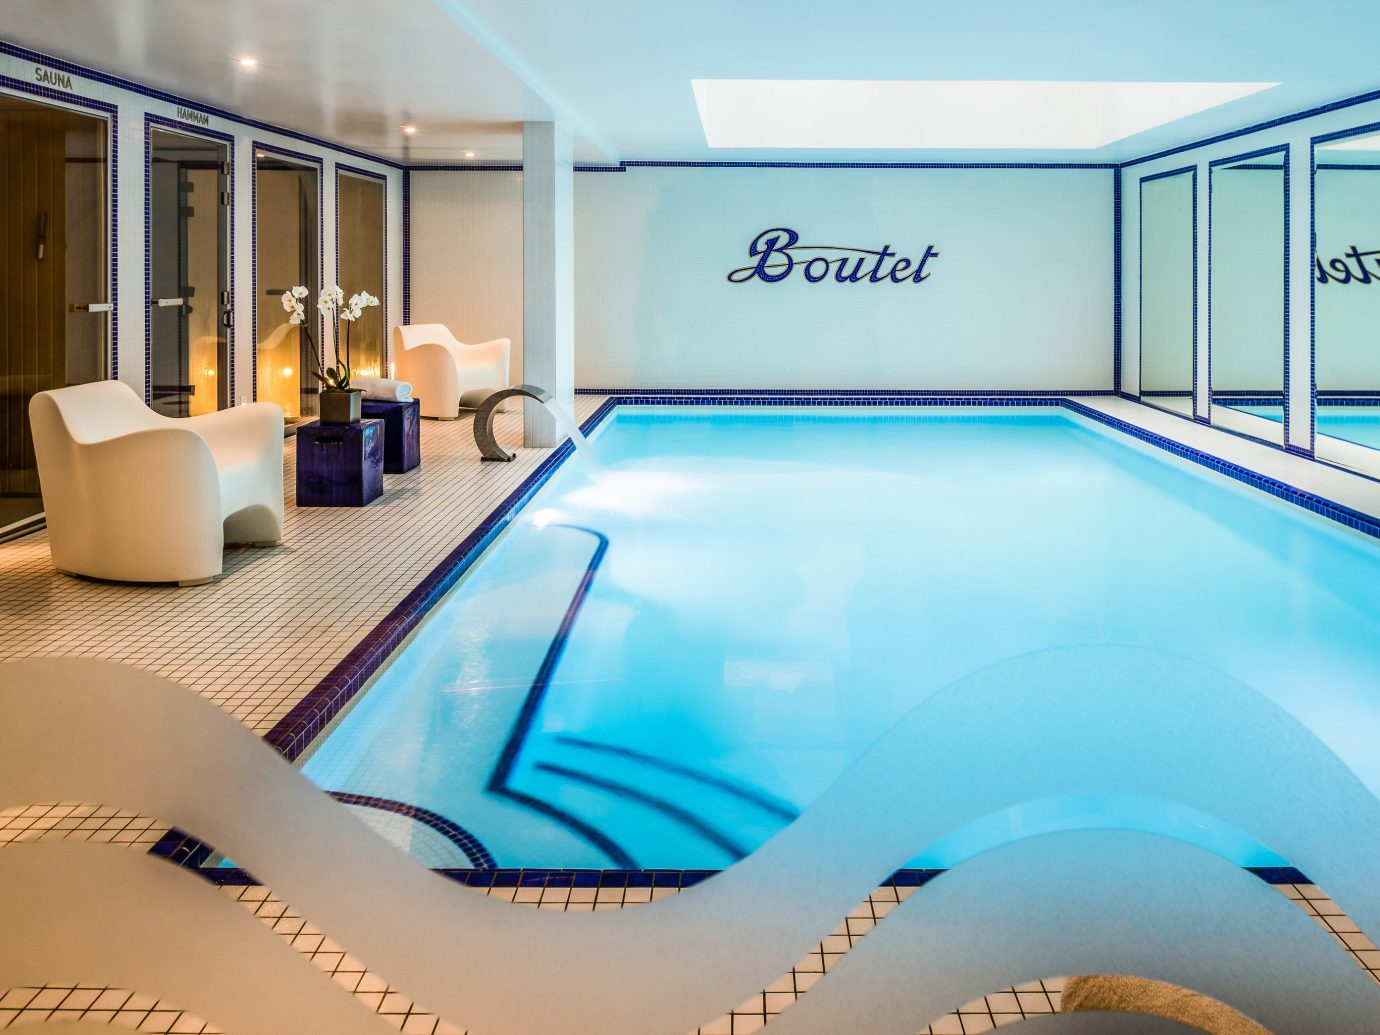 Boutique Hotels Hotels indoor swimming pool property leisure leisure centre real estate floor interior design amenity hotel flooring apartment